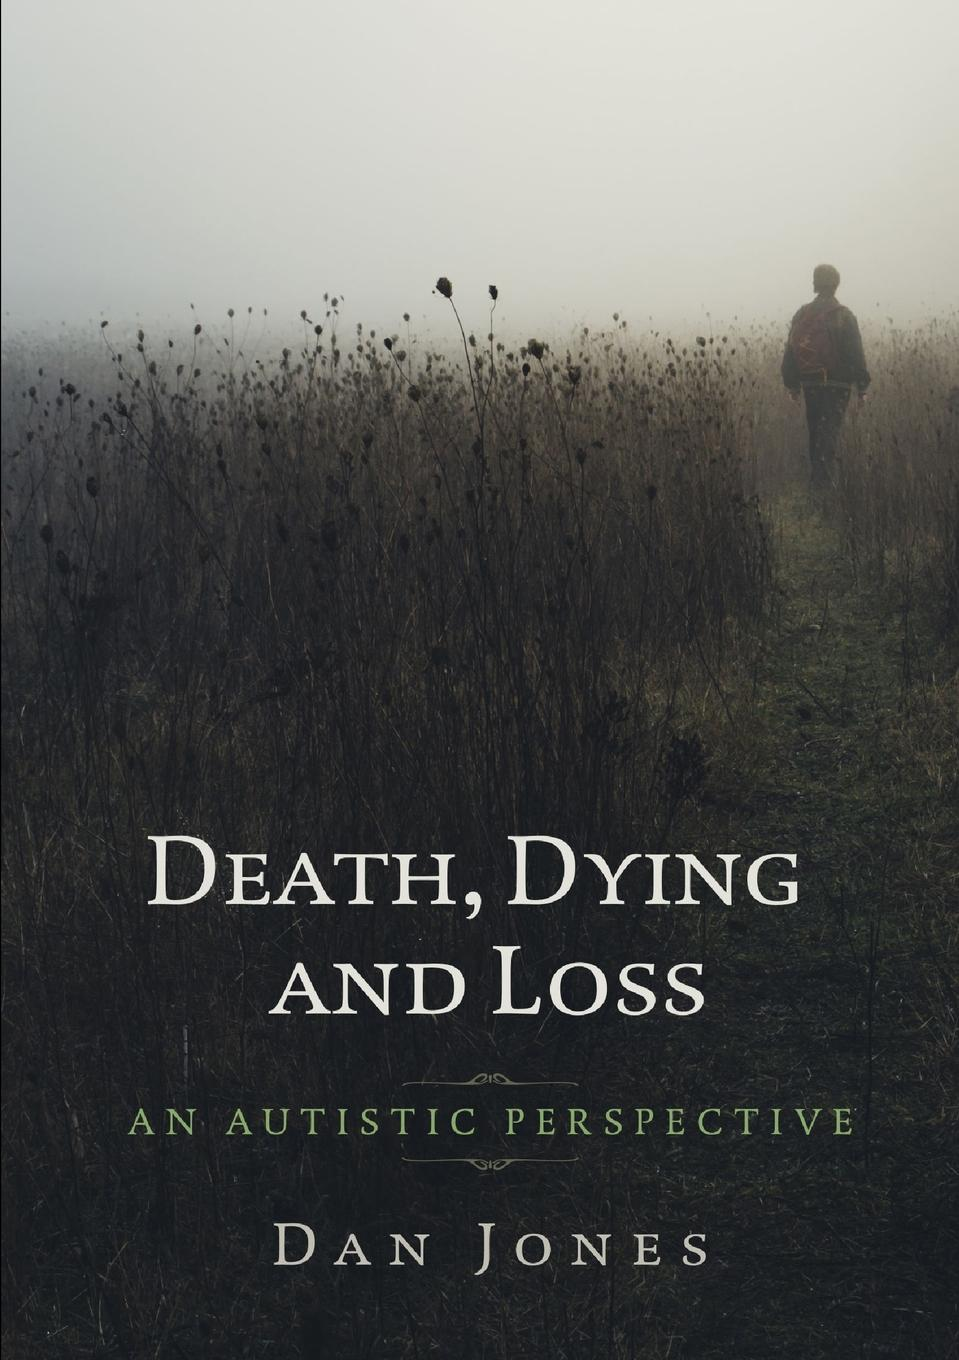 Dan Jones An Autistic Perspective. Death, Dying and Loss what constitutes an appropriate education for autistic children